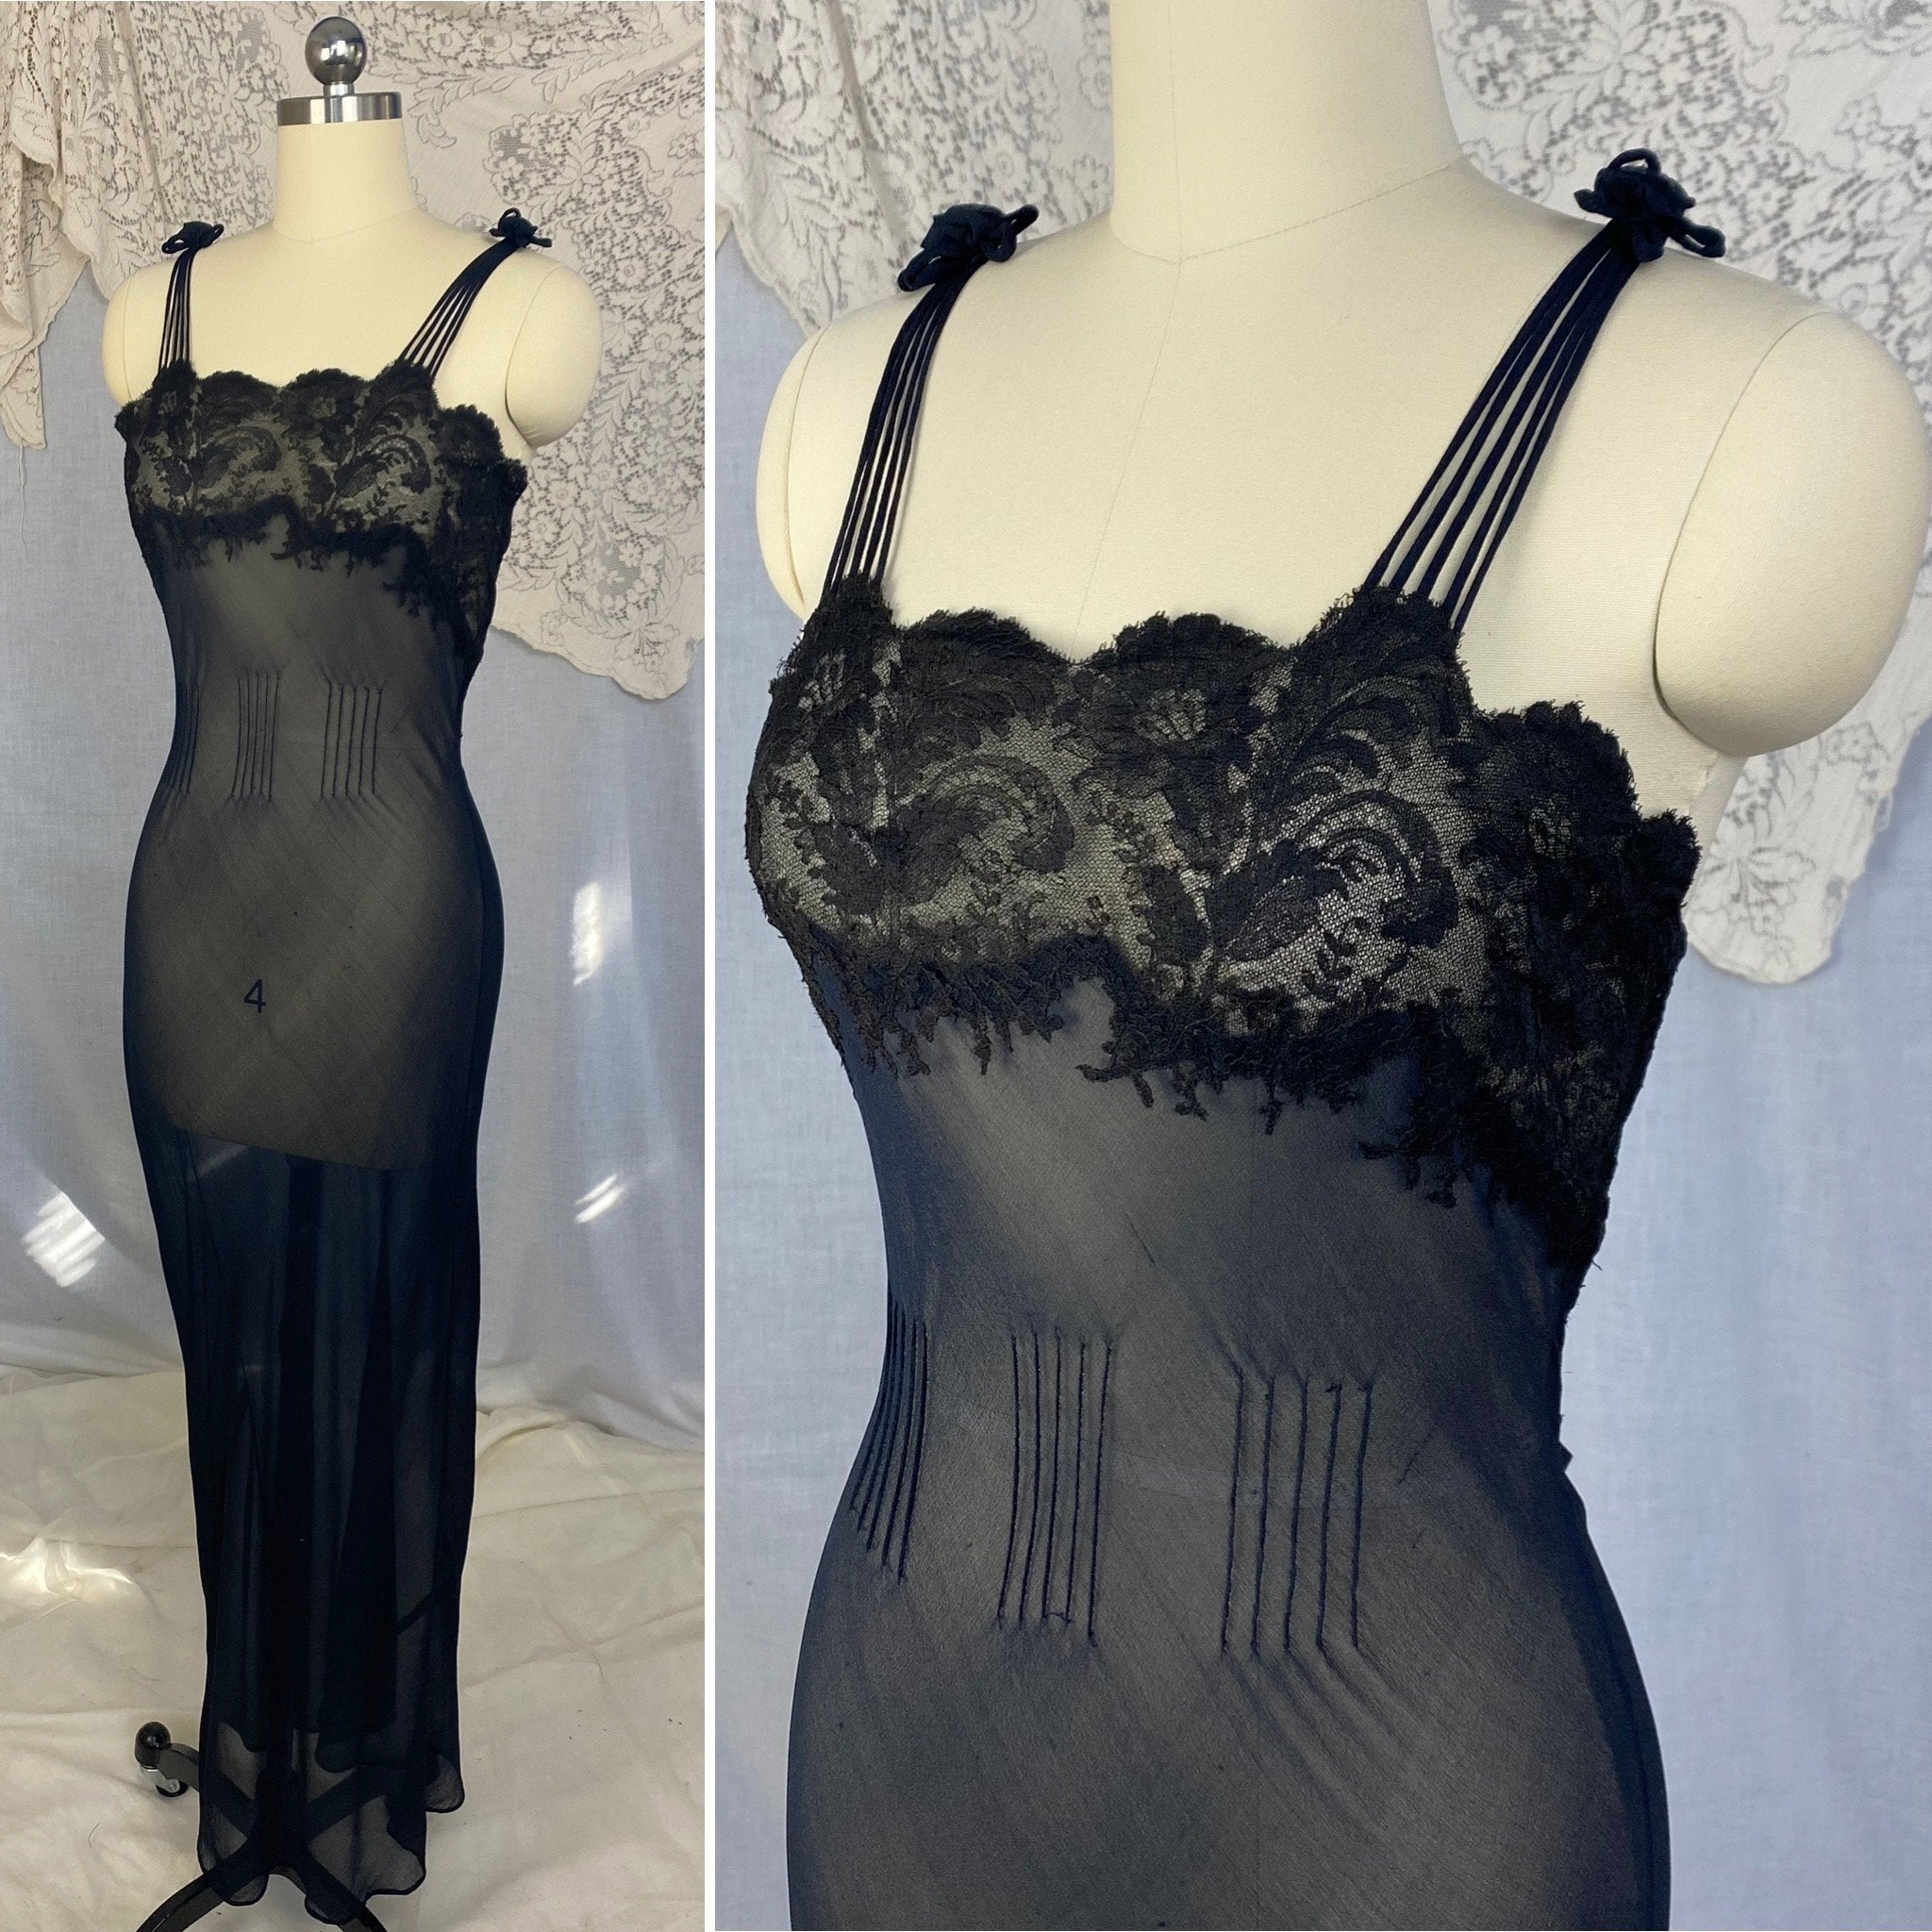 Vintage 1930's Nightgown | Sheer Black Silk Chiffon with Chantilly Lace & Crisscross Back | Size 36-38 Bust, M - Daggers & Dames